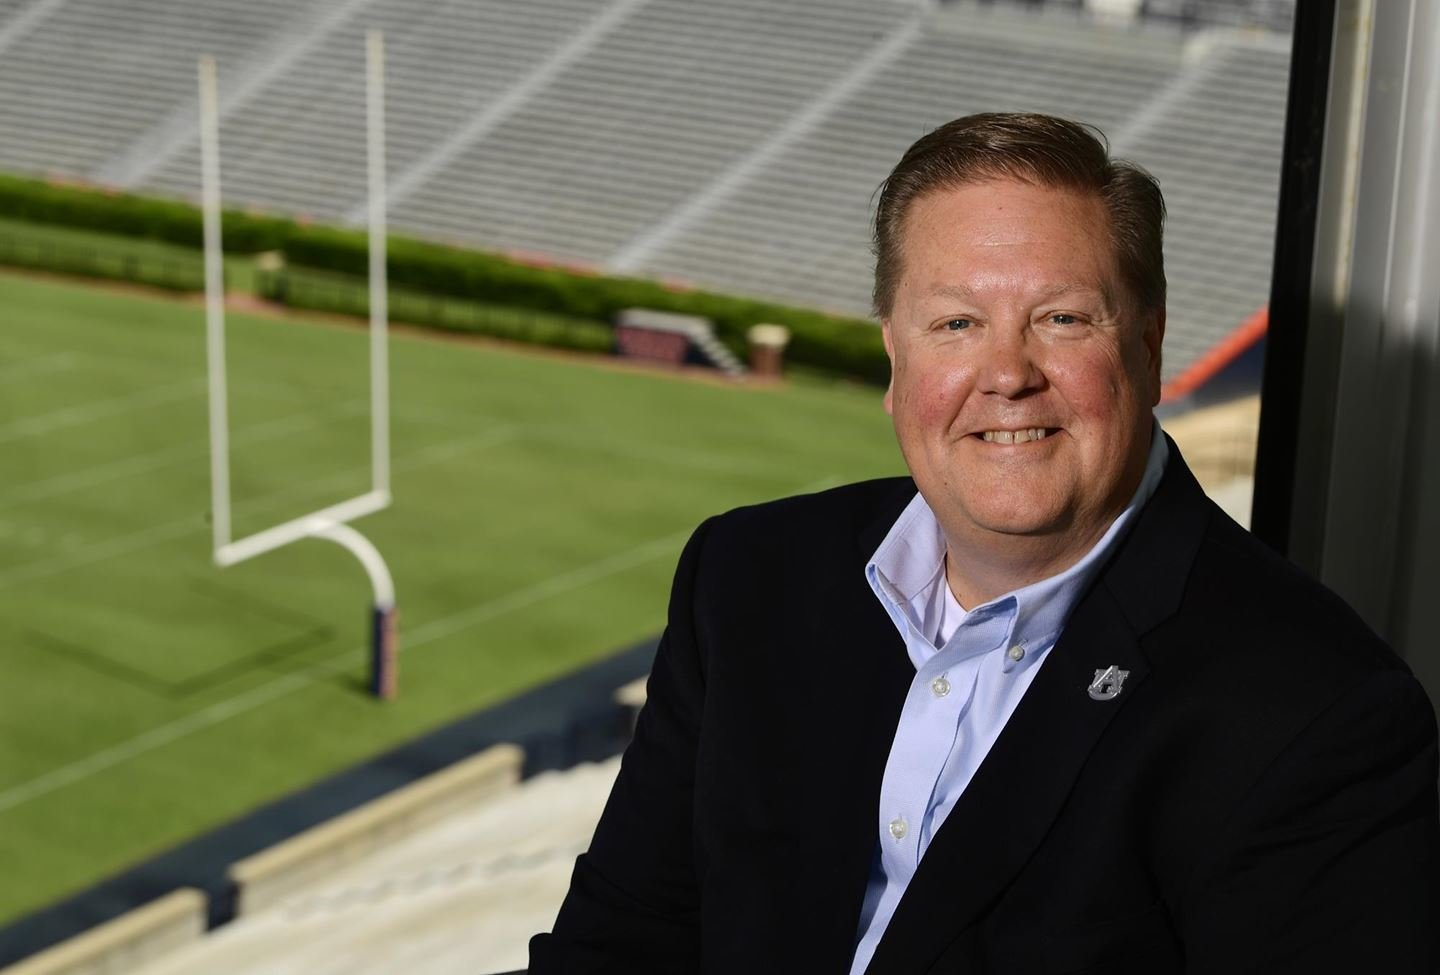 Next Play-by-Play Broadcaster (Update 8/12: Andy Burcham)